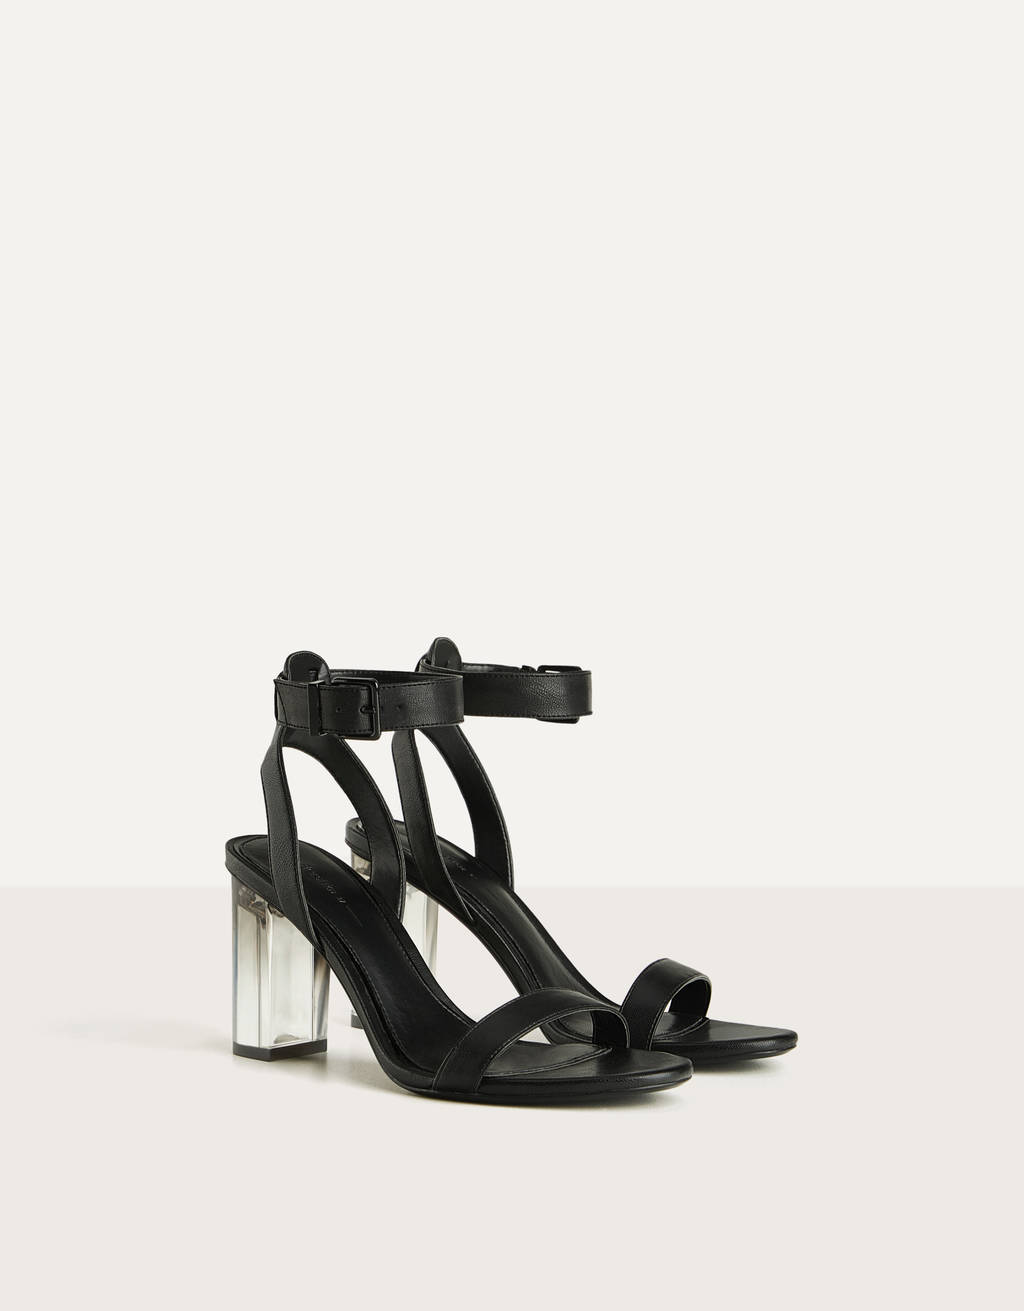 High heel sandals with methacrylate heels